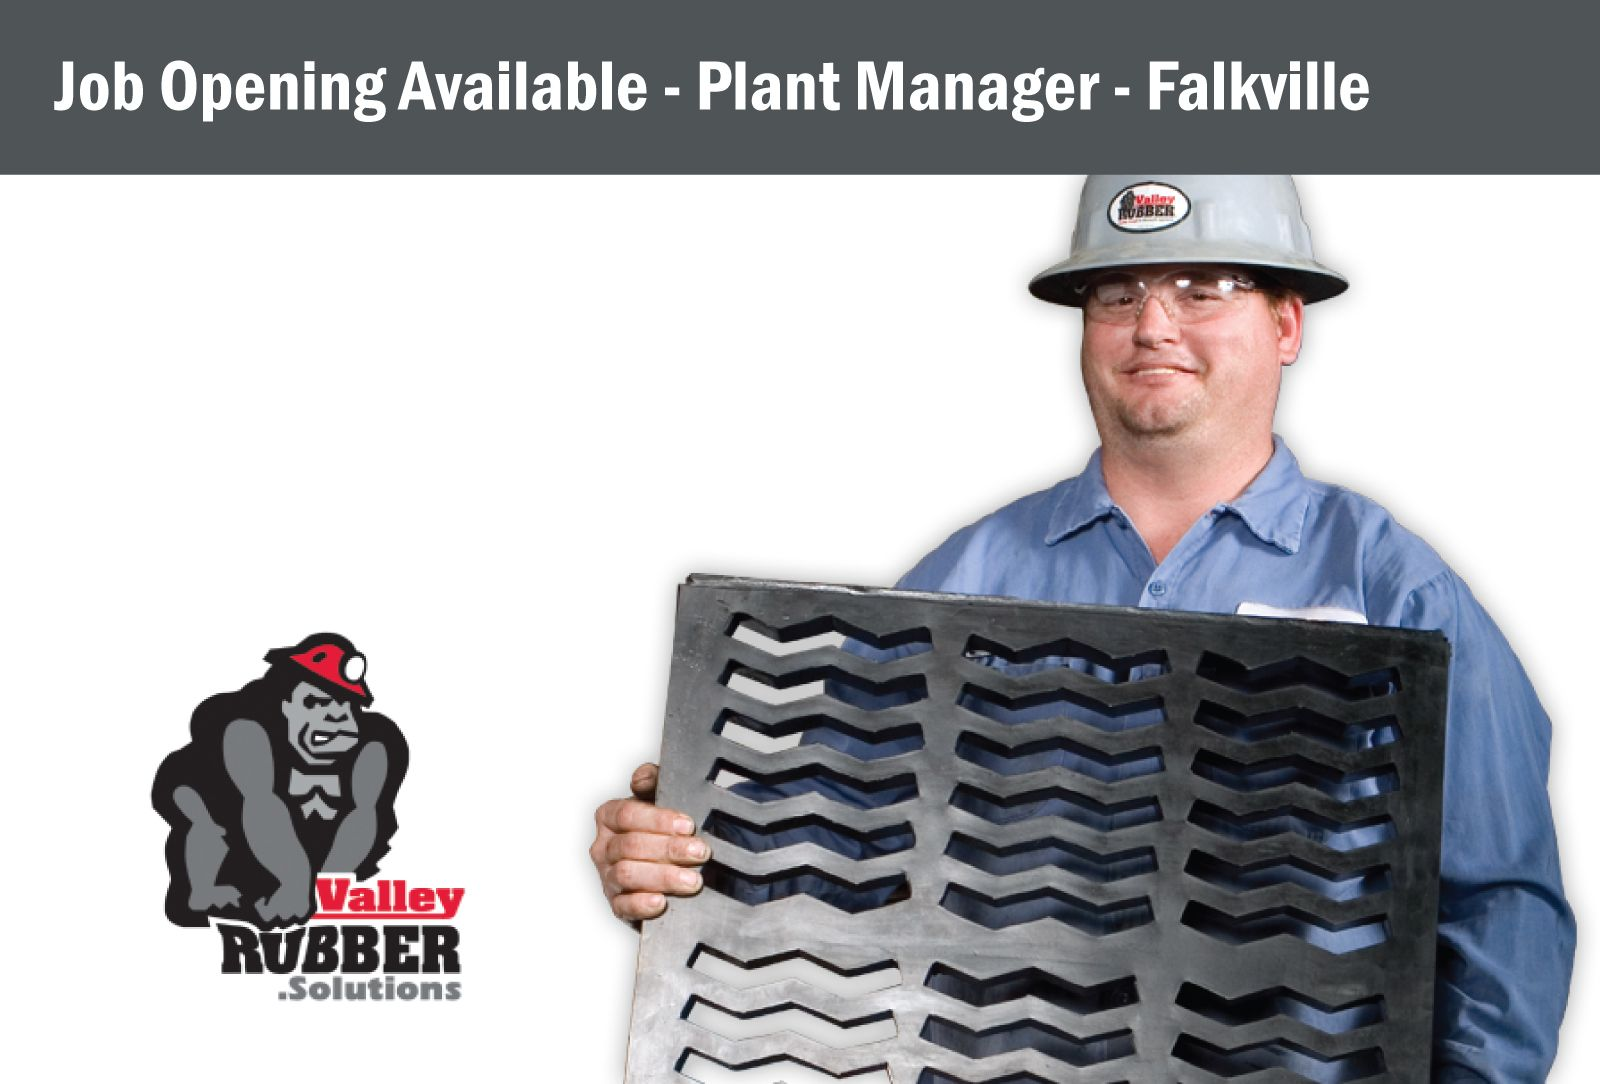 JOB OPENING AVAILABLE PLANT MANAGER Employer Valley